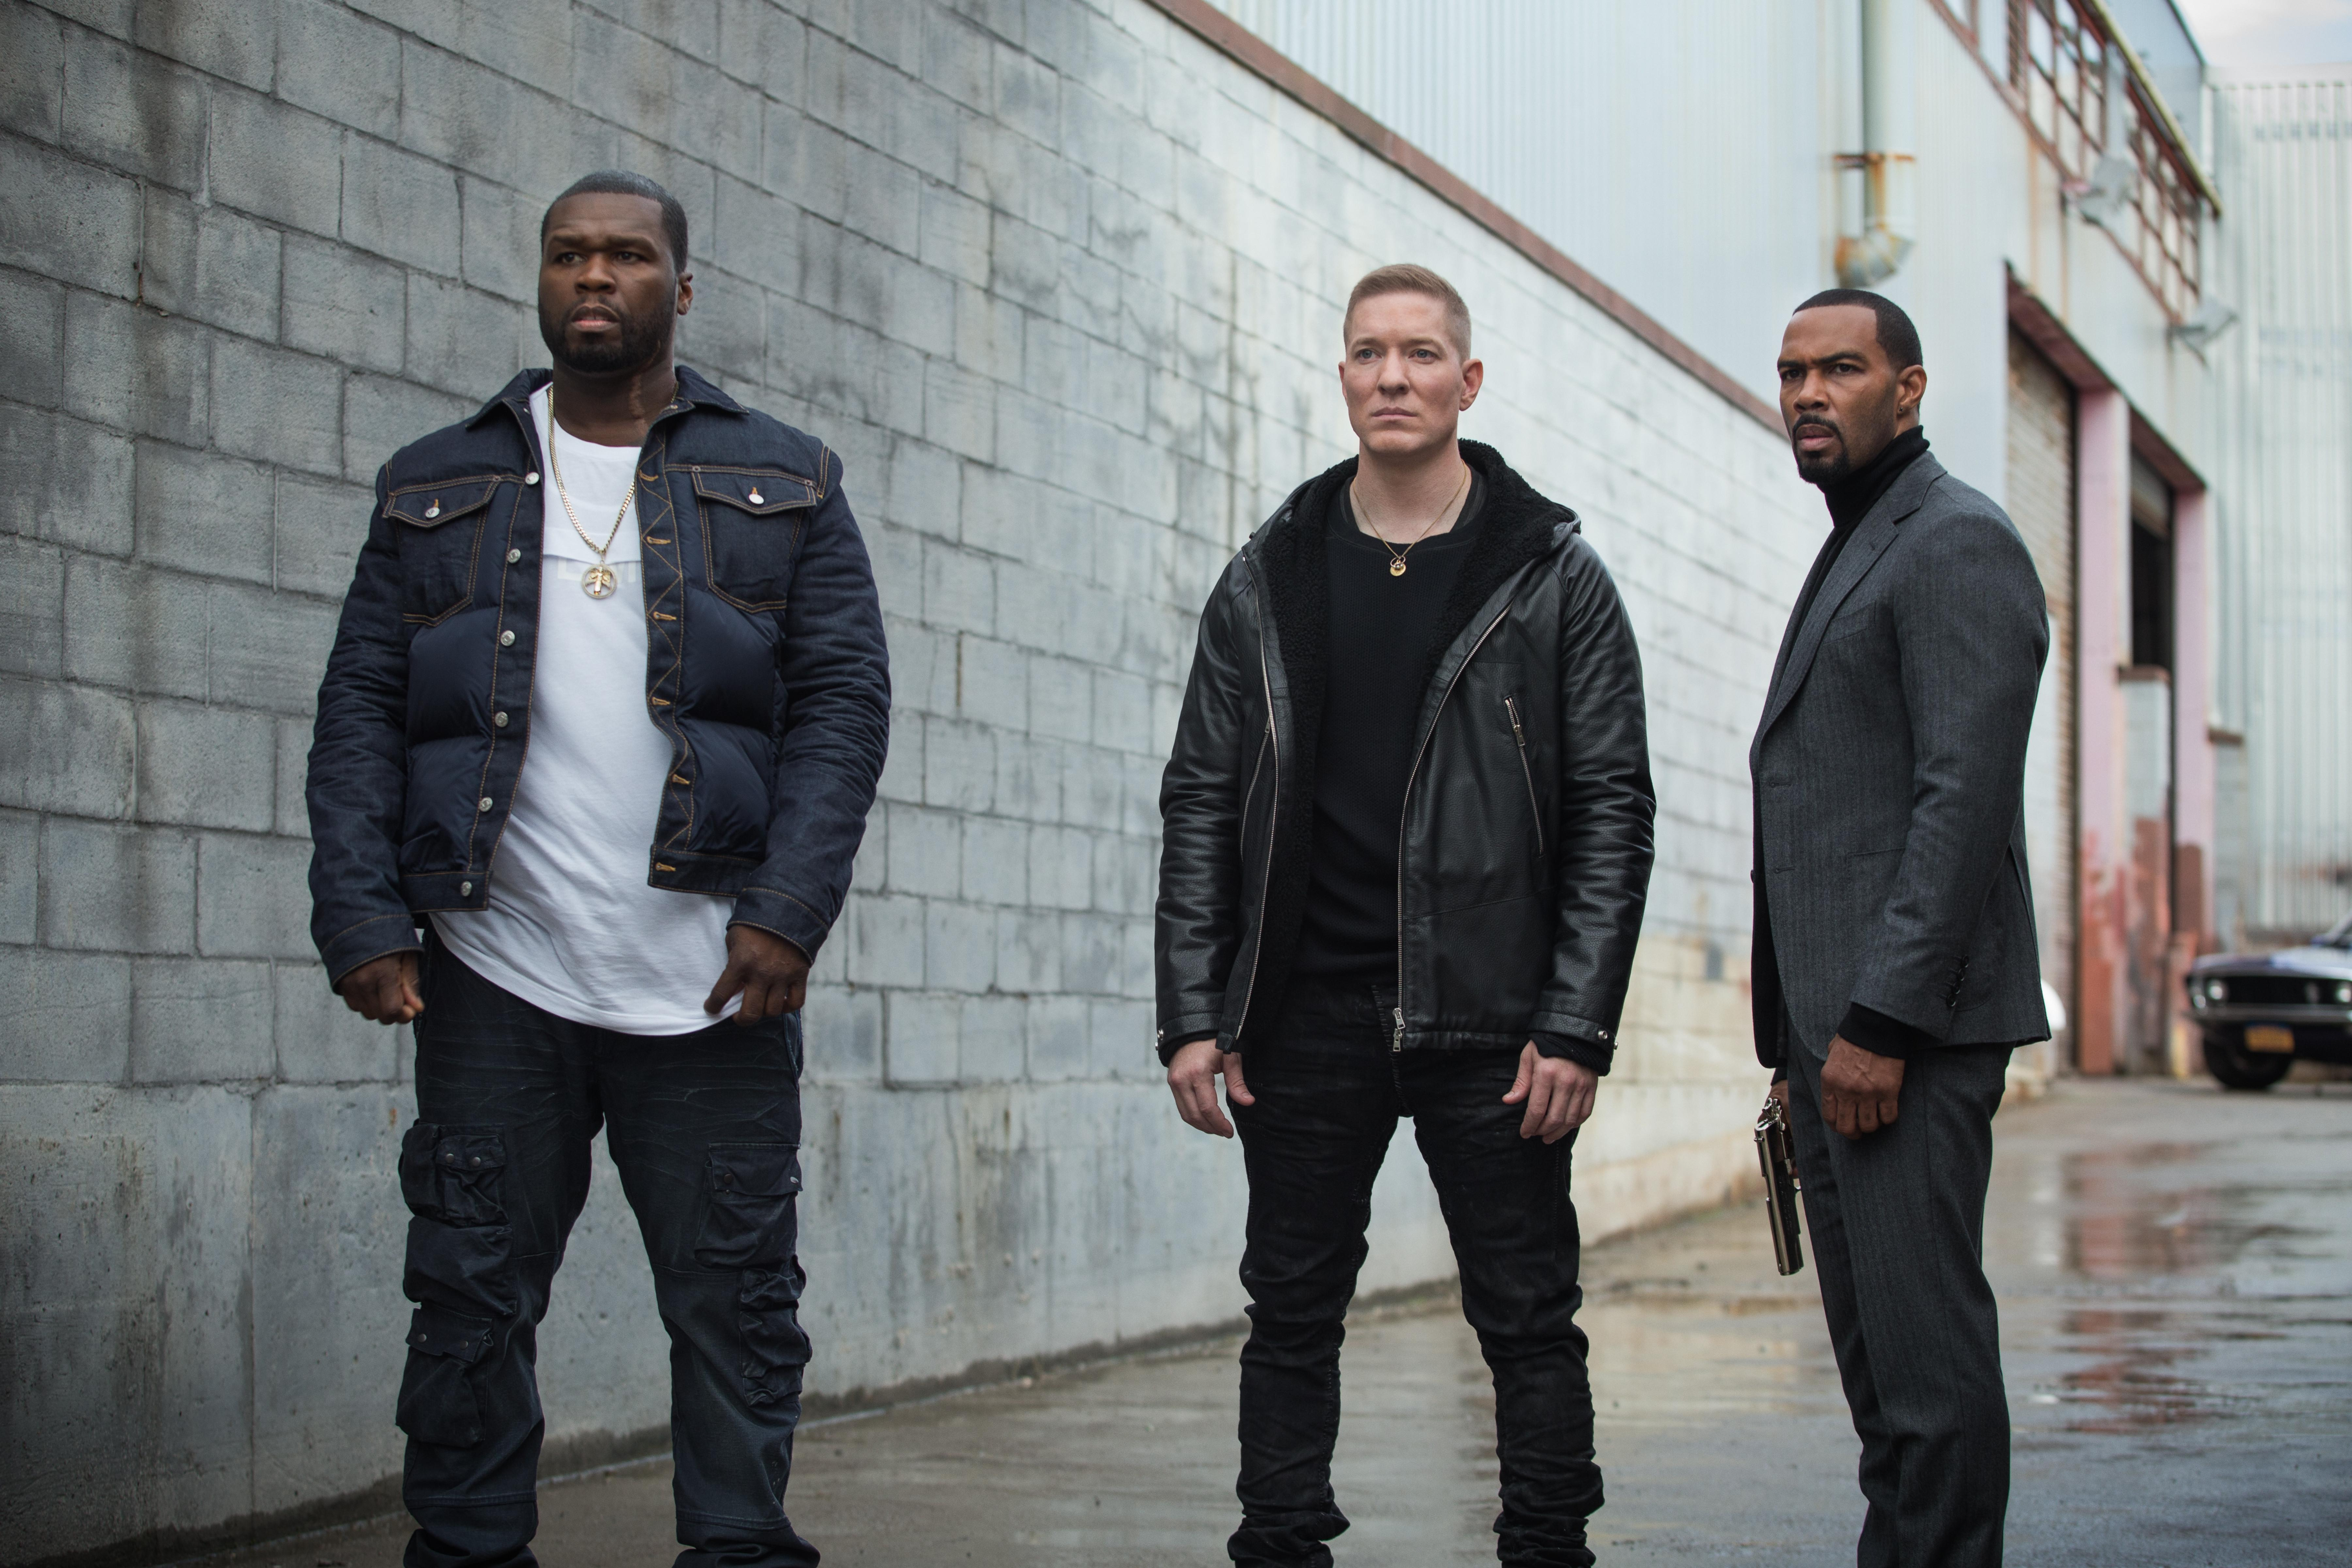 ghost omari hardwick continues to seek revenge with the help of tommy joseph sikora and kanan curtis 50 cent jackson on power season 5 episode 2